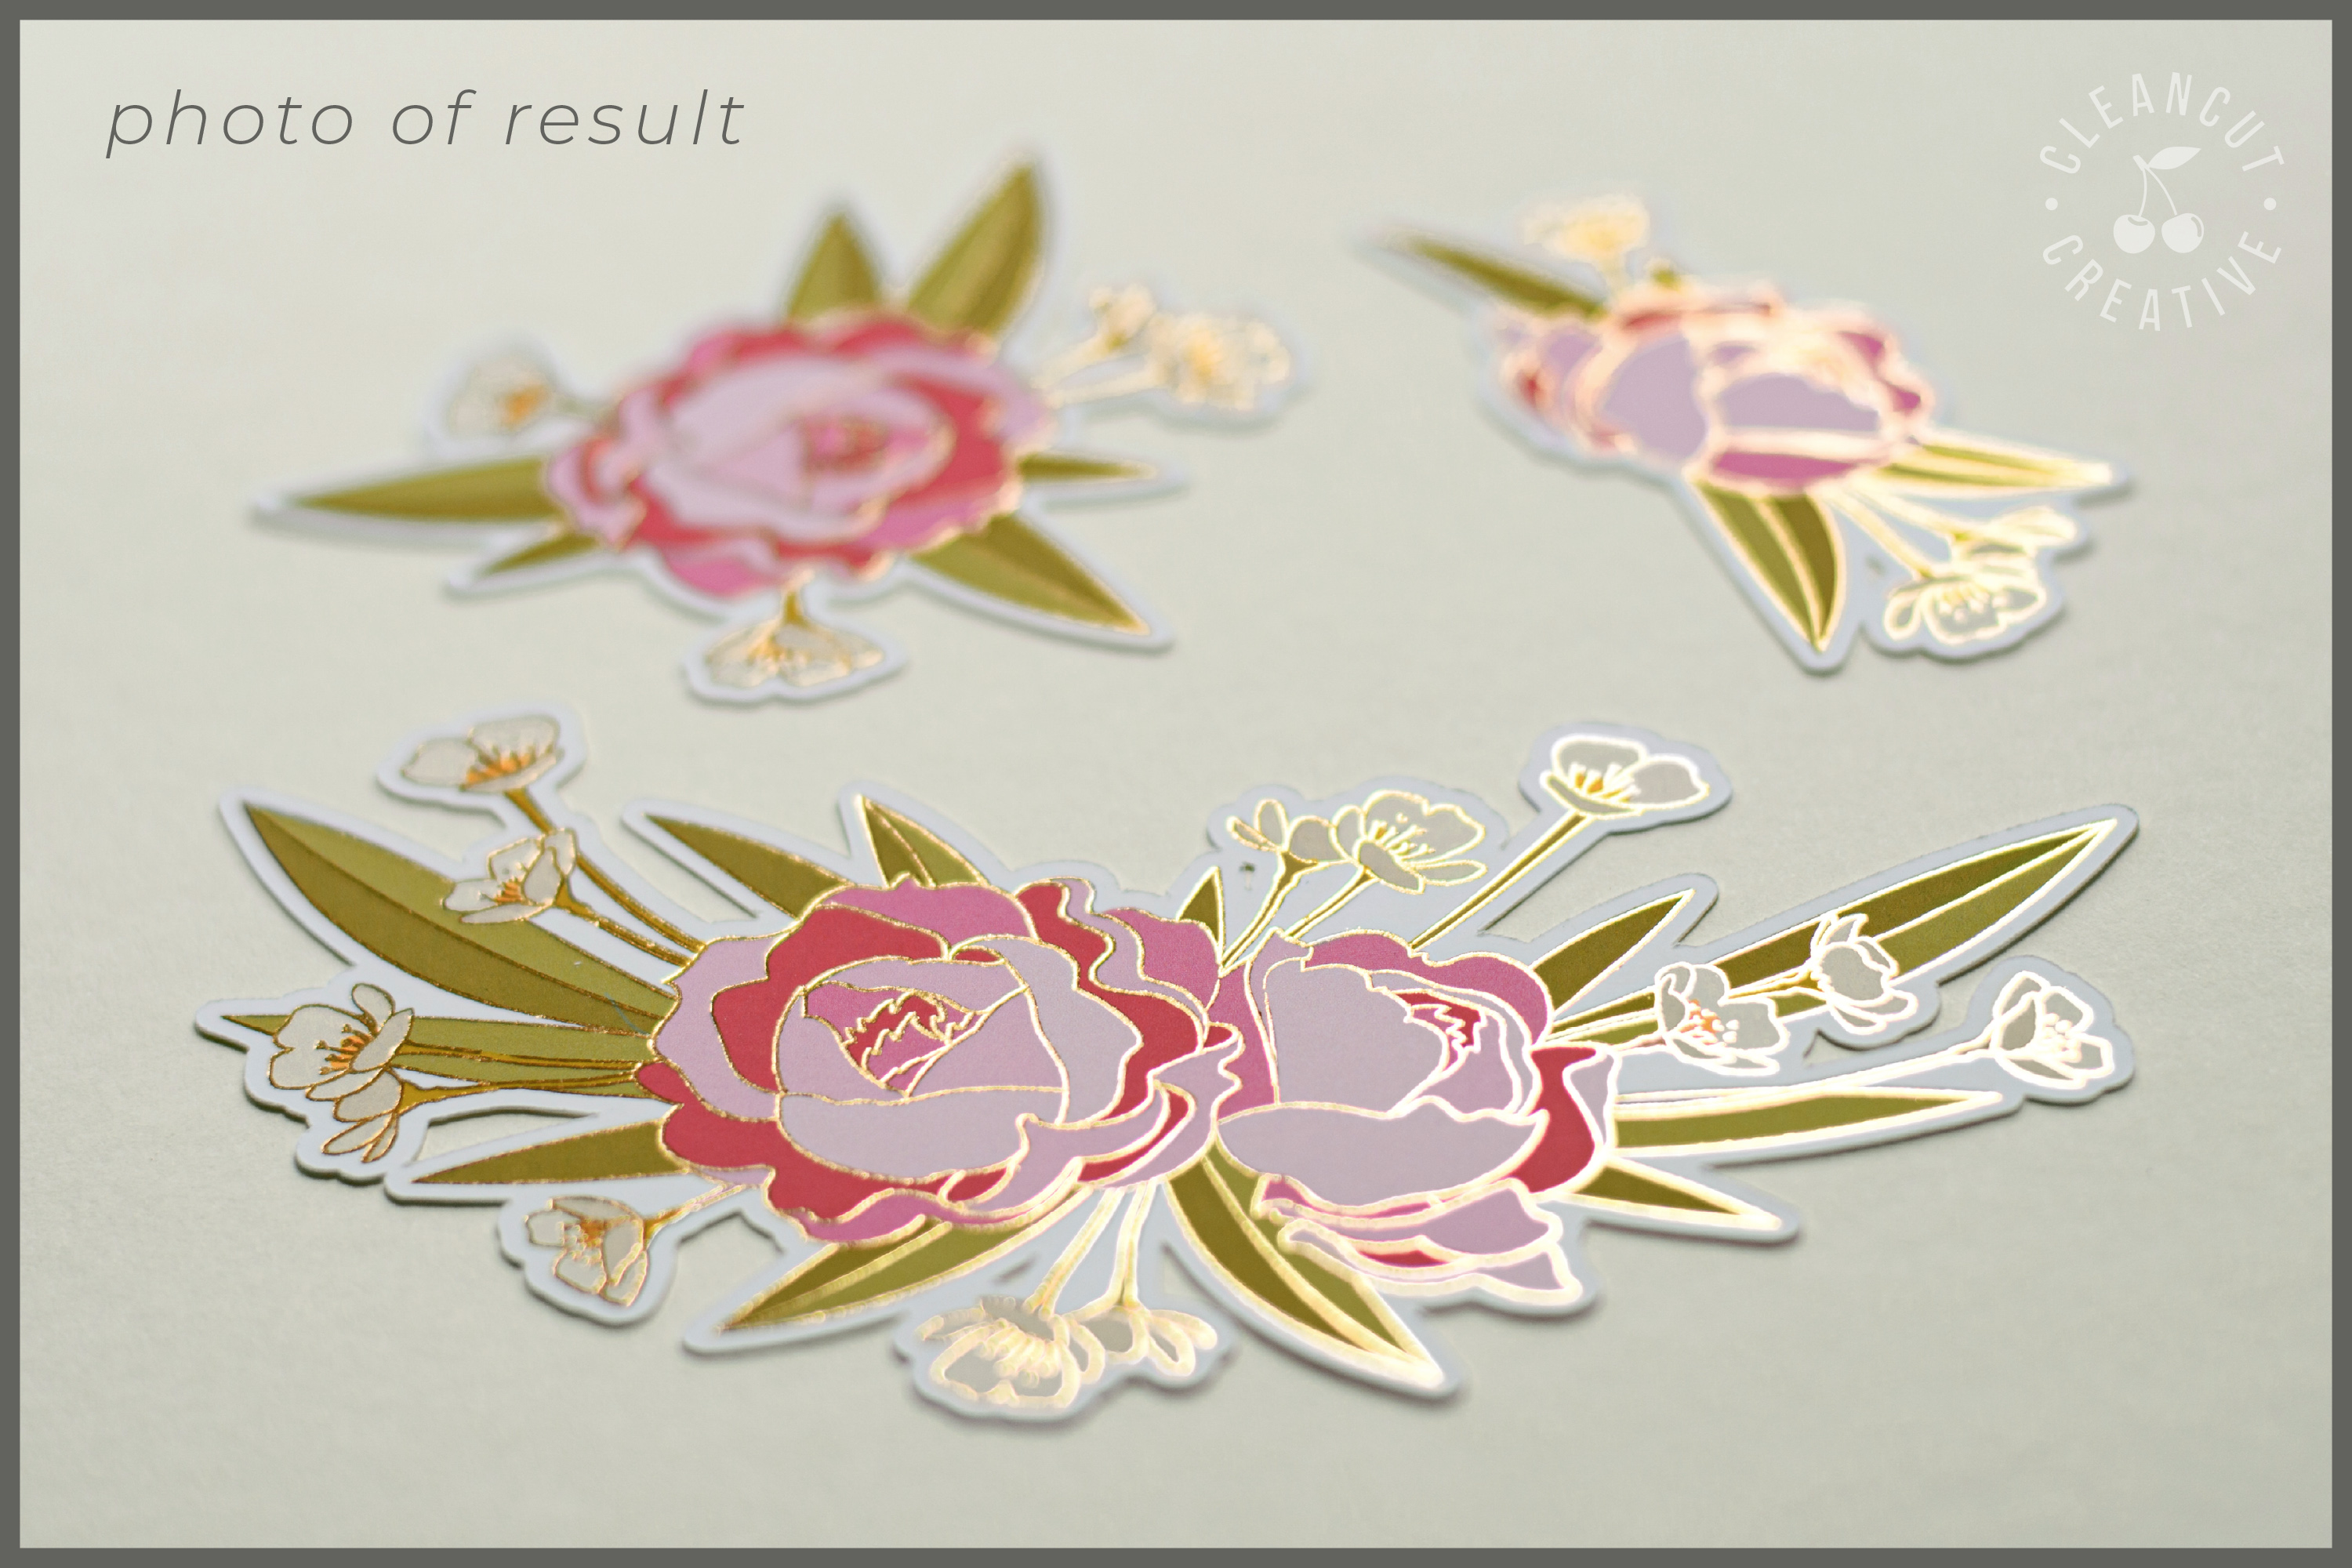 Foil Quill Flowers | Print & Foil single line sketch design example image 2